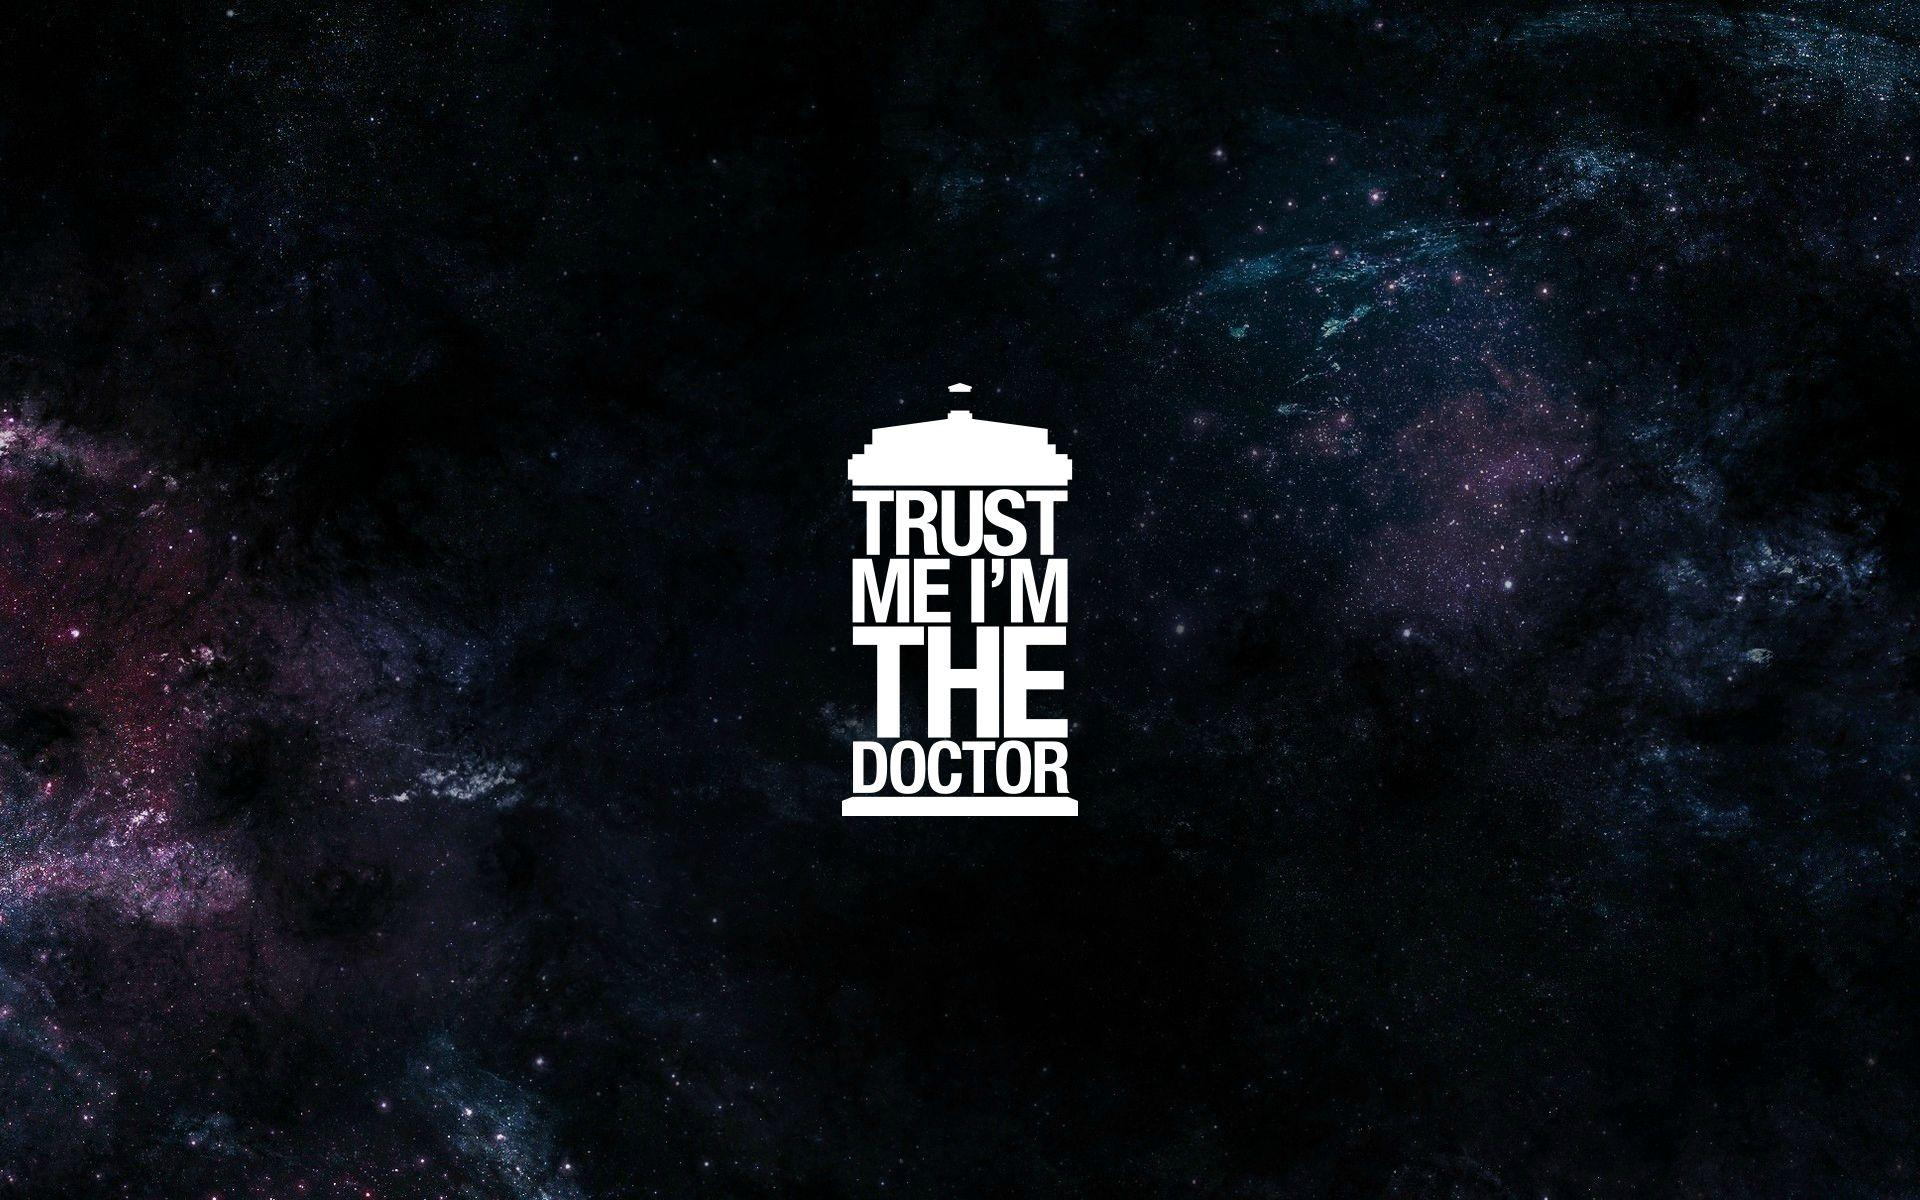 Movie Doctor Who Wallpapers Hd Wallpapers Dr 1920x1200PX